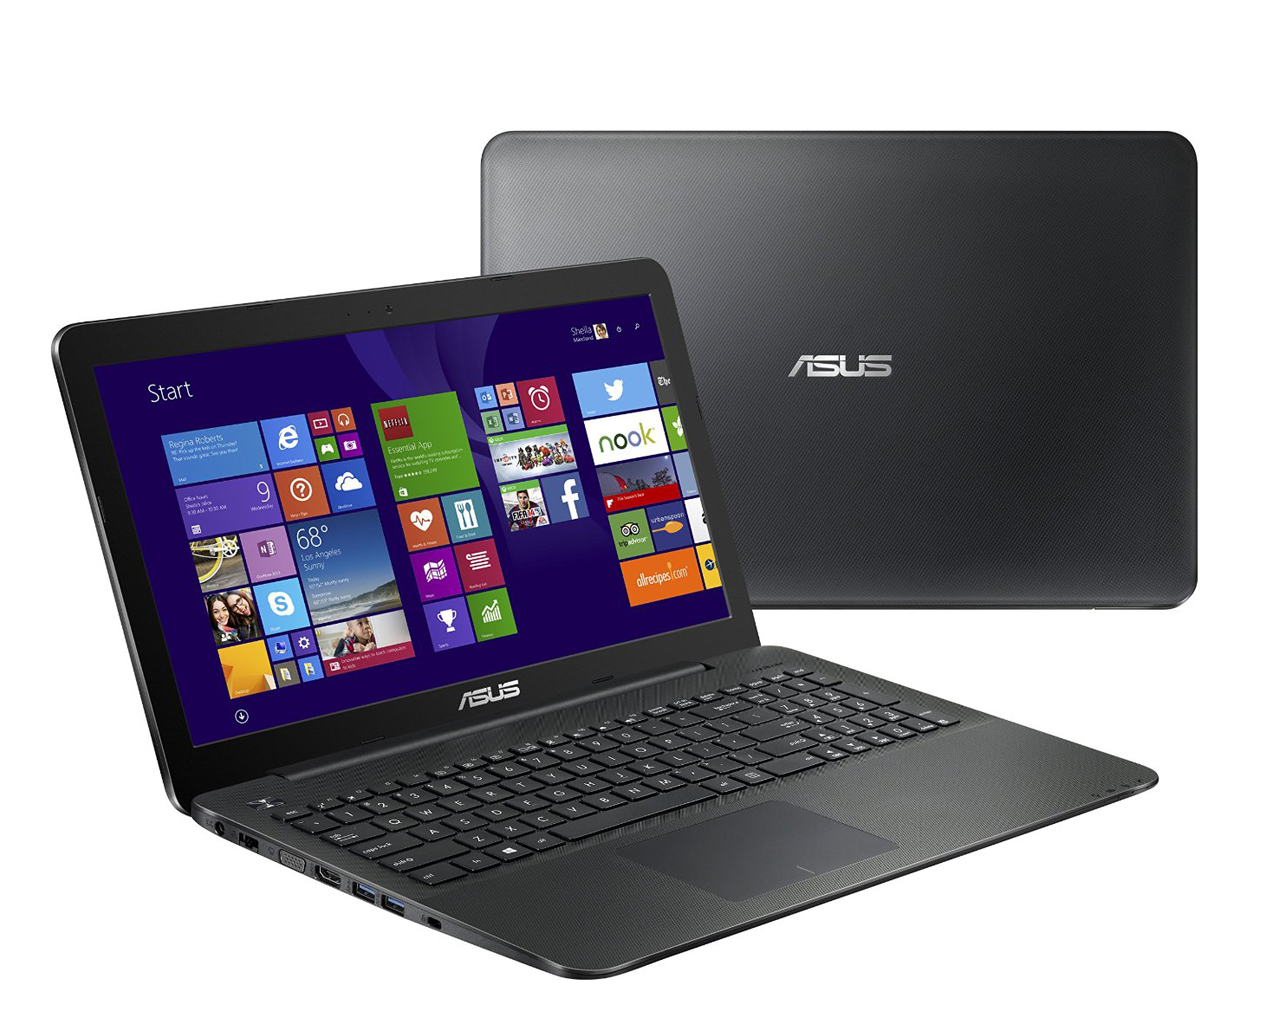 ASUS VIVOBOOK X540LJ ICE SOUND DRIVERS FOR WINDOWS 7